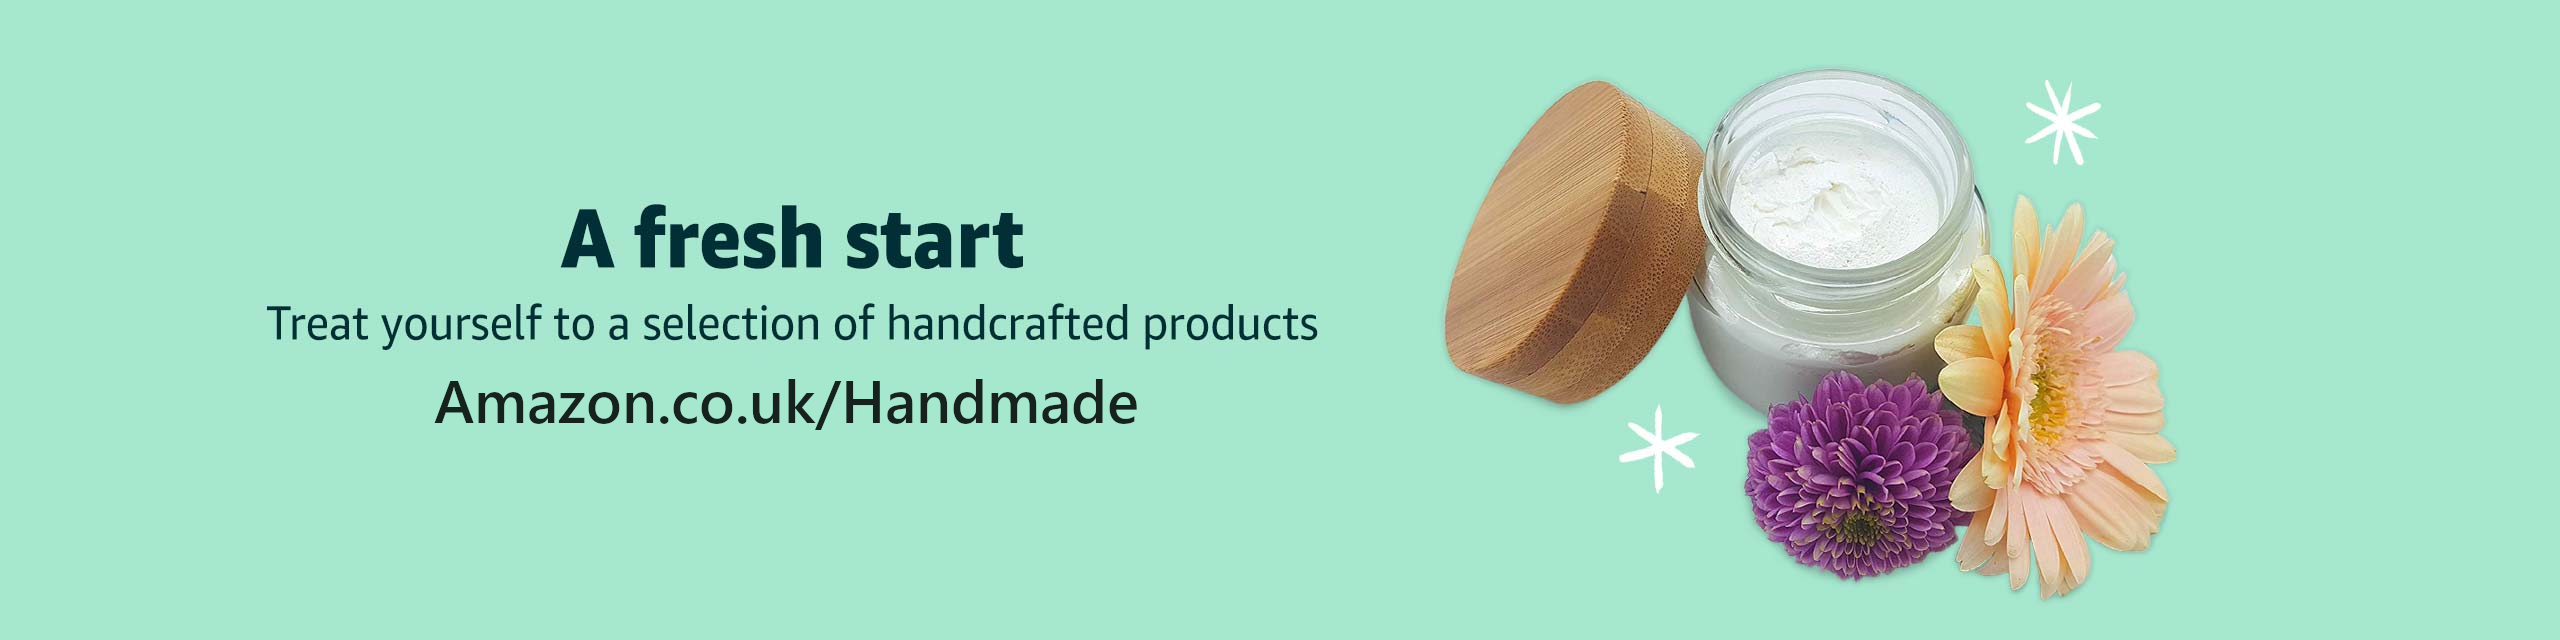 handmade products at amazon